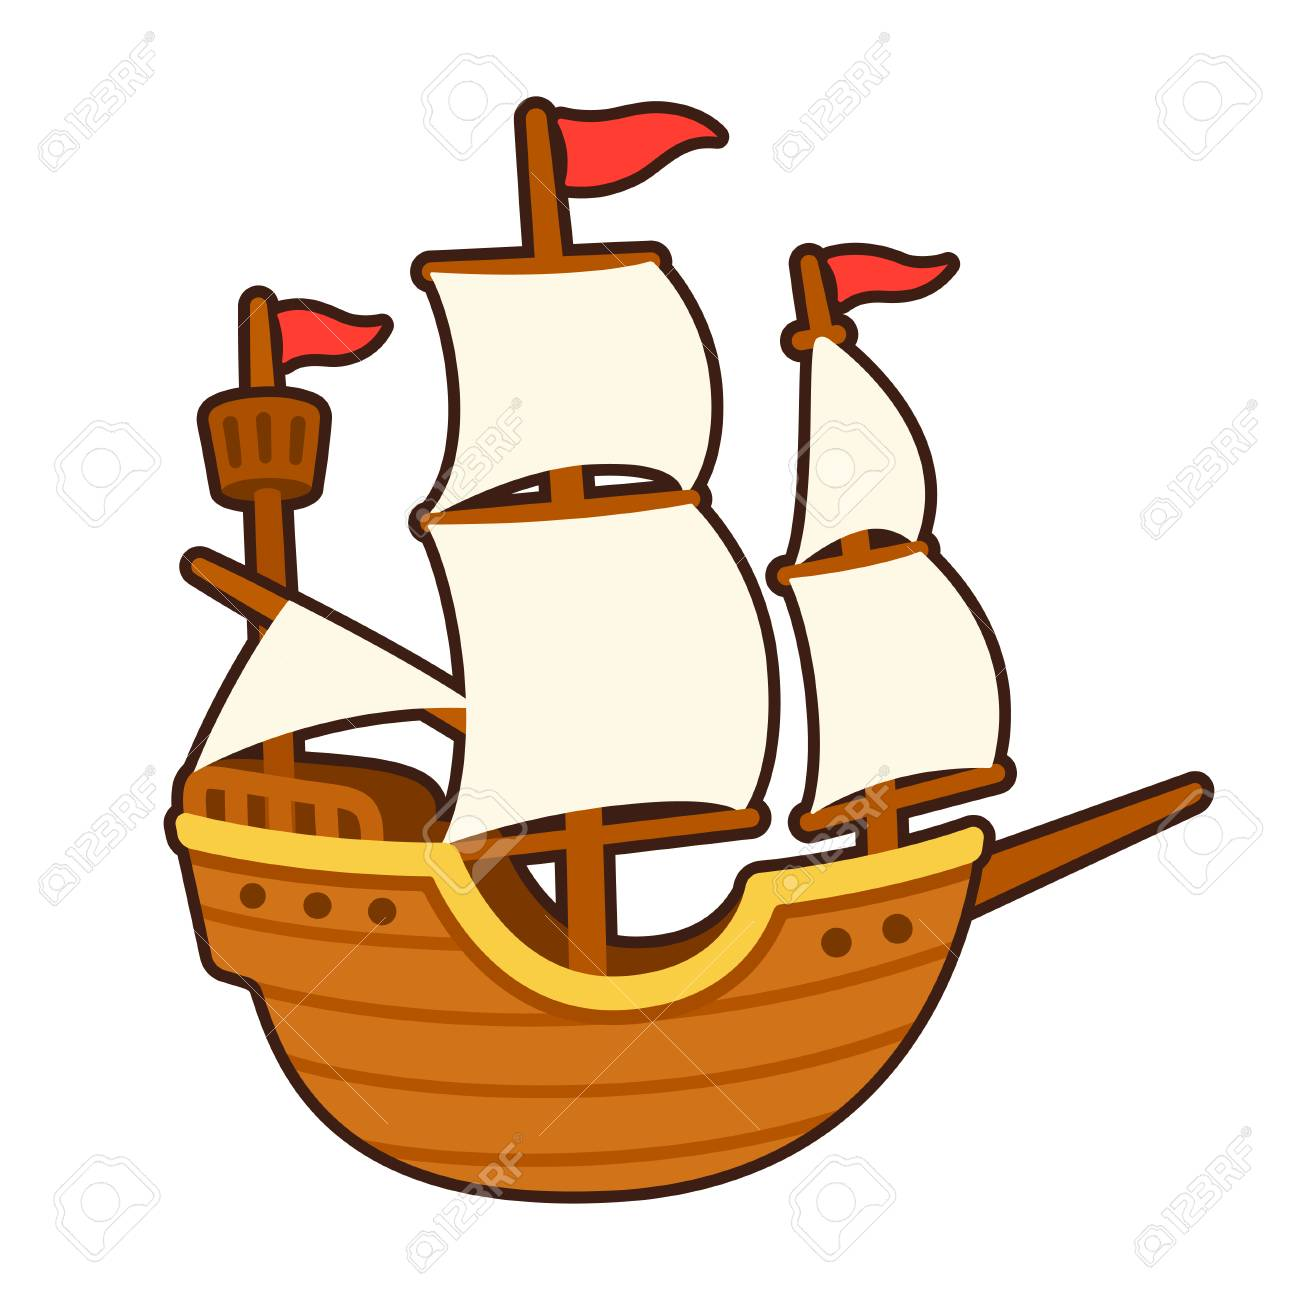 old cartoon ship drawing with white sails traditional tall ship royalty free cliparts vectors and stock illustration image 89095102 old cartoon ship drawing with white sails traditional tall ship